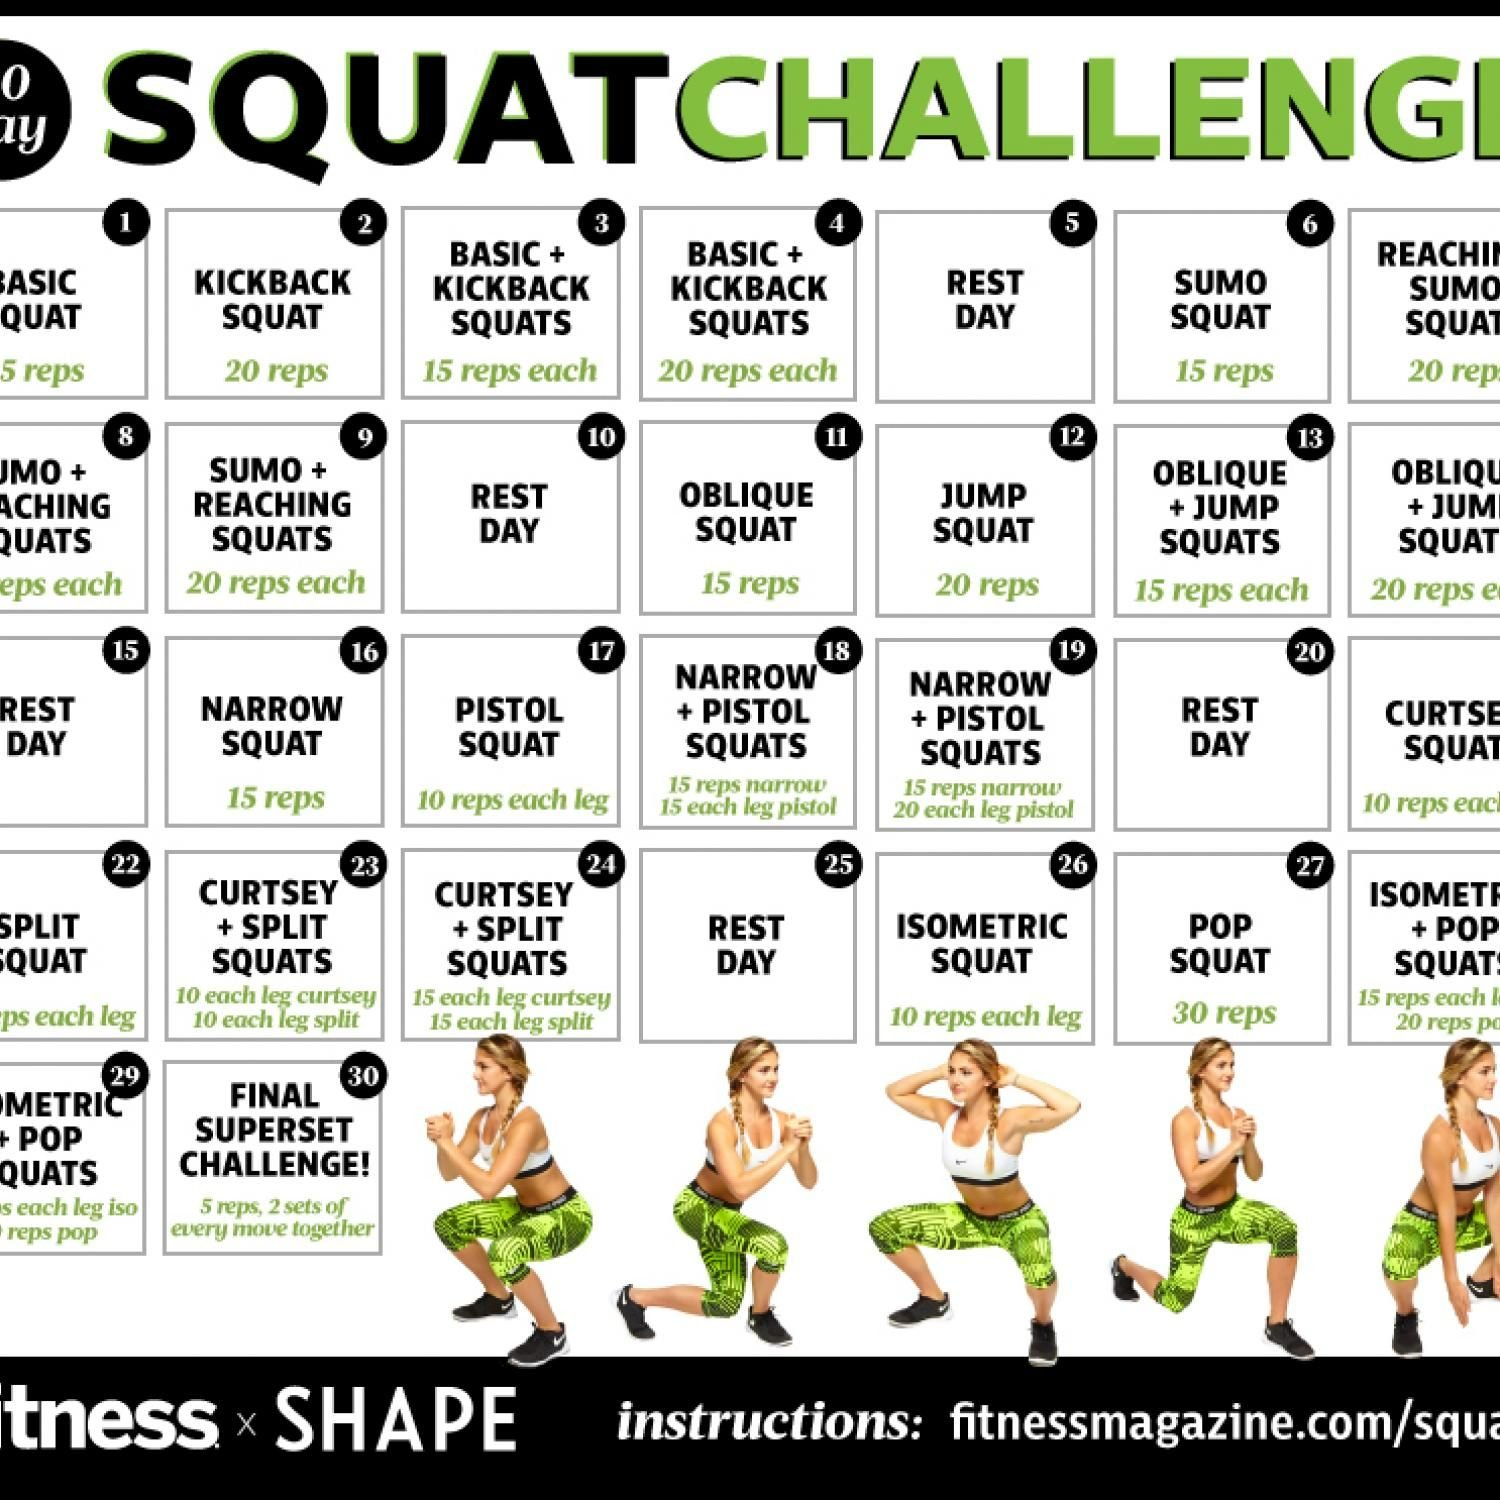 30 Day Squat Challenge Calendar | Printable Calendar 2020-2021 30 Day Squat Challenge Schedule Calendar